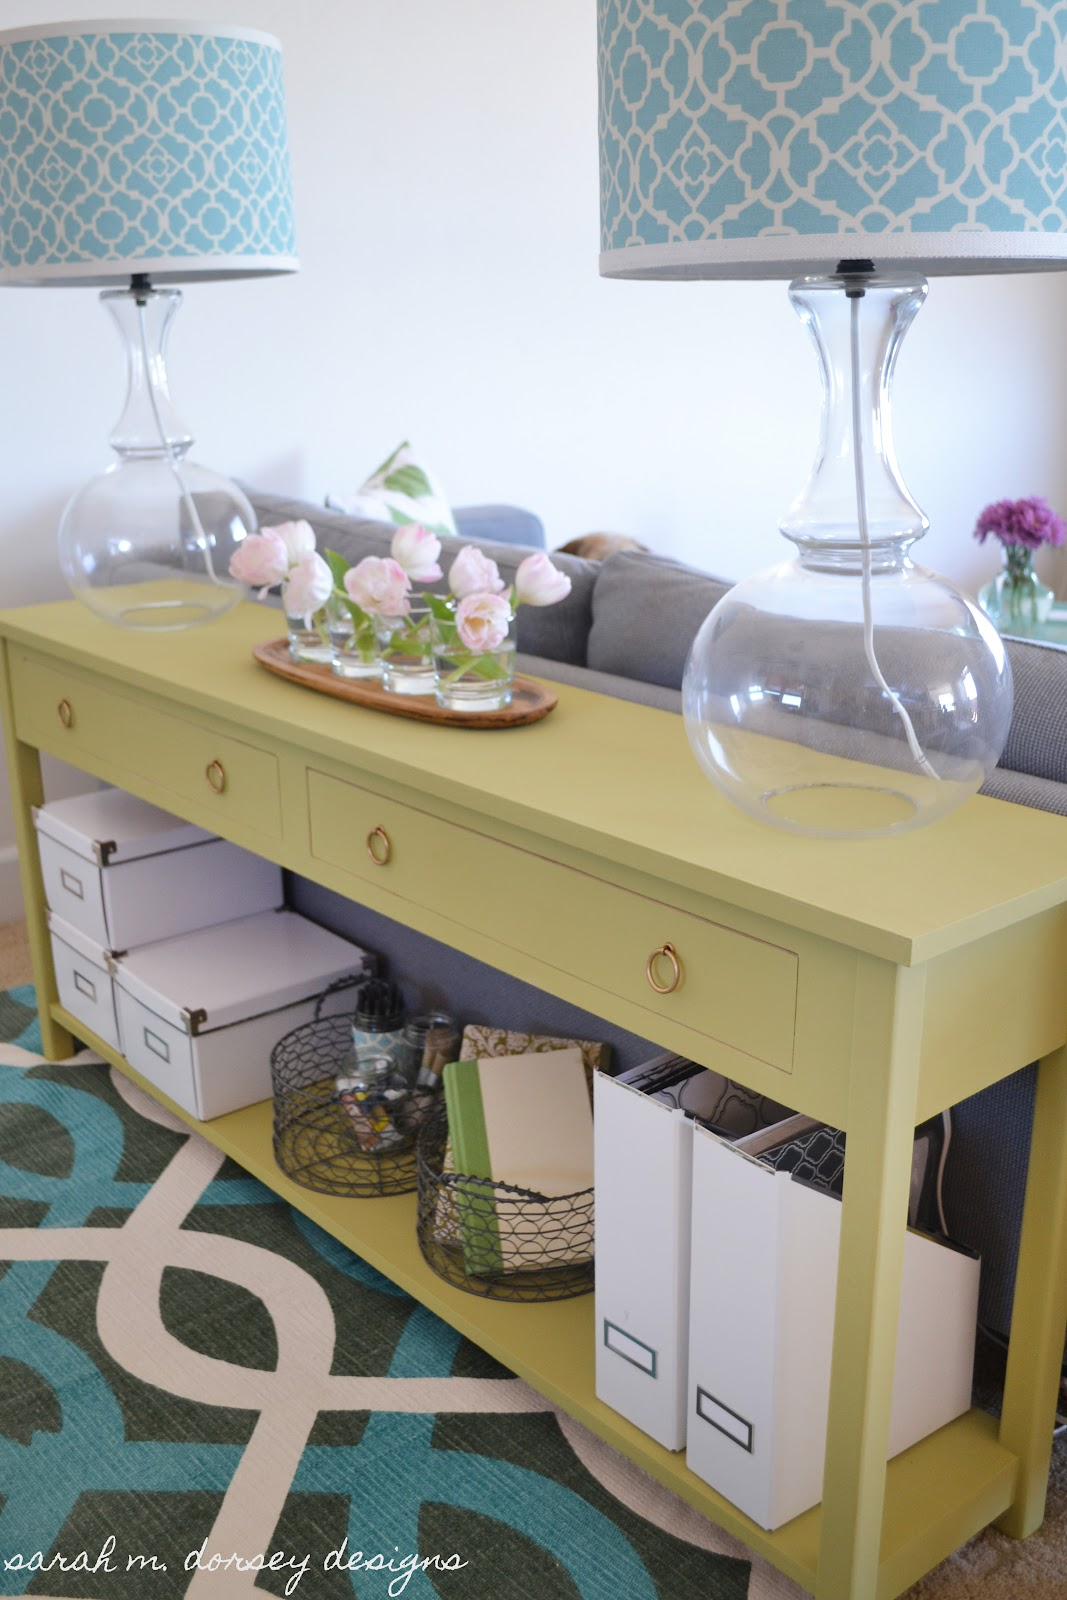 Making Your Own Sofa Table Sofaben Af Trae Sarah M Dorsey Designs Happiness